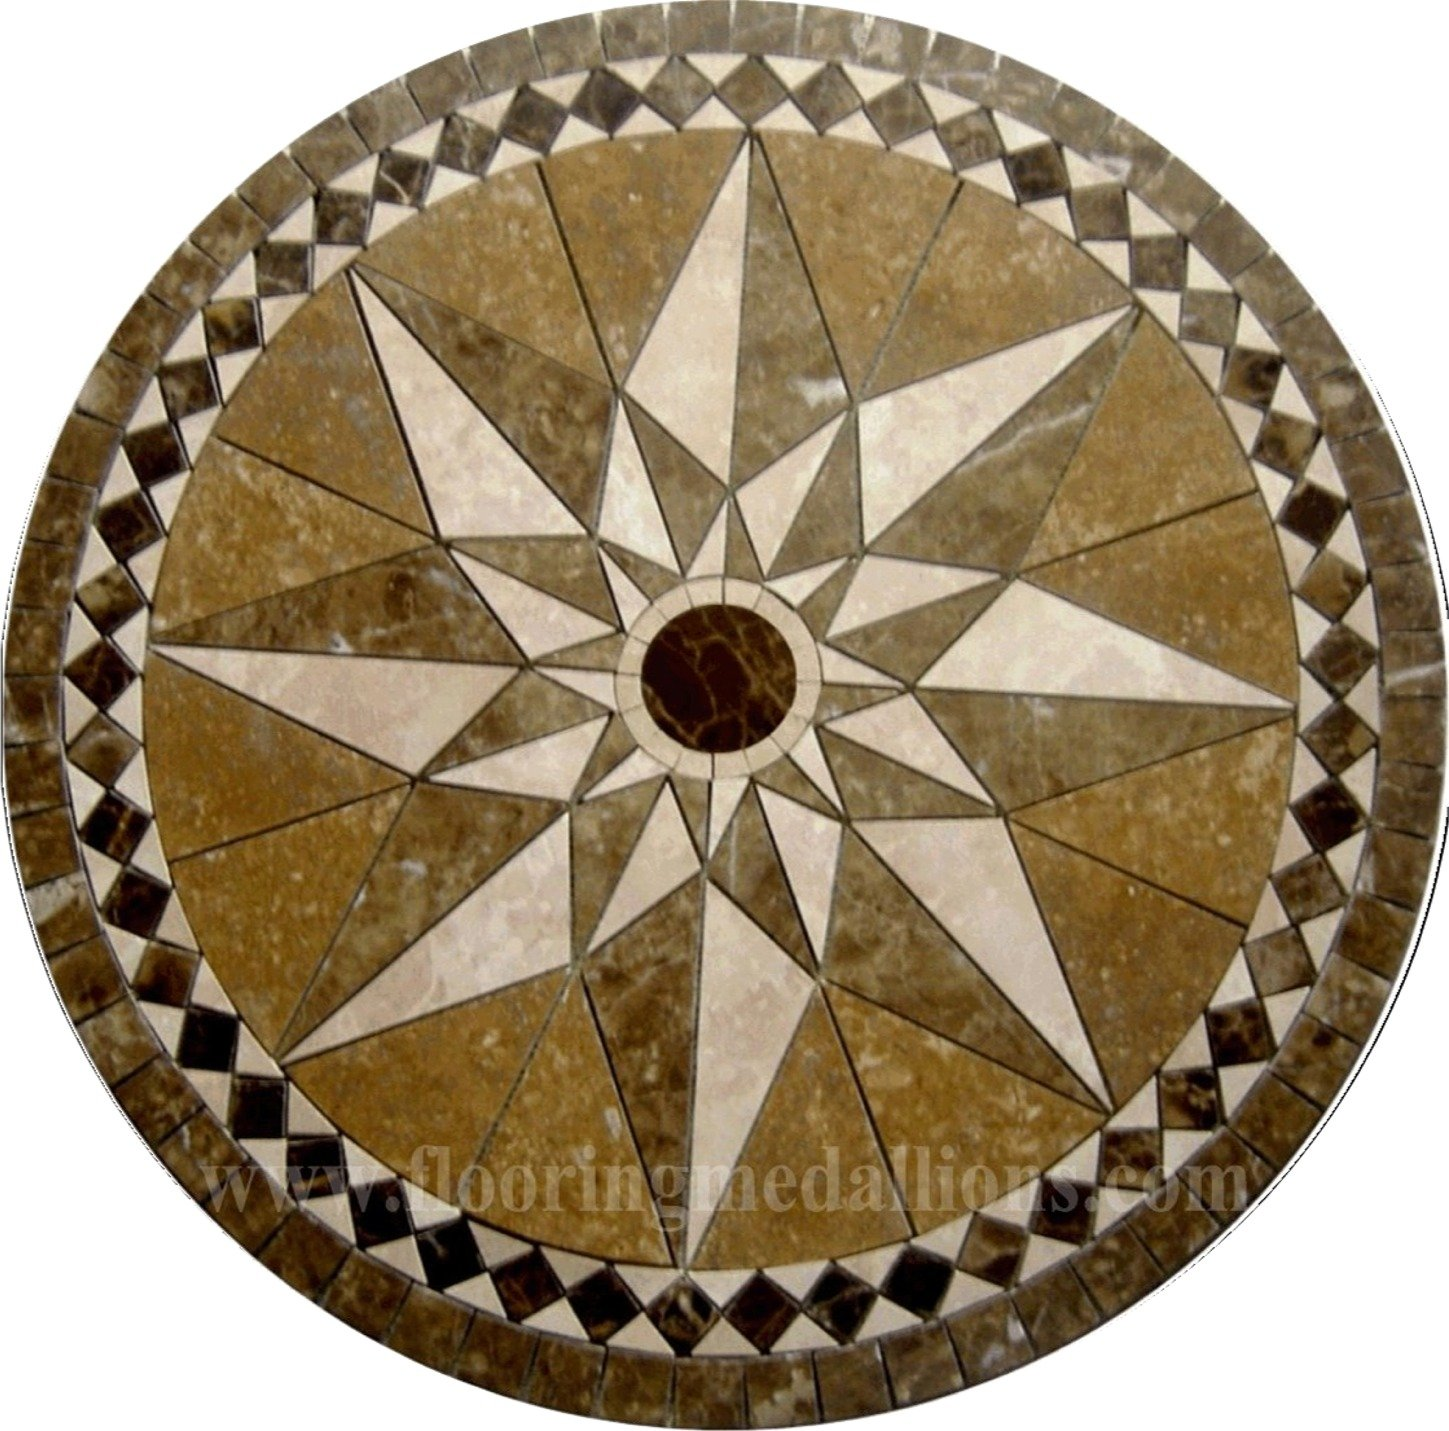 36 39 39 Floor Tile Marble Medallion 2016